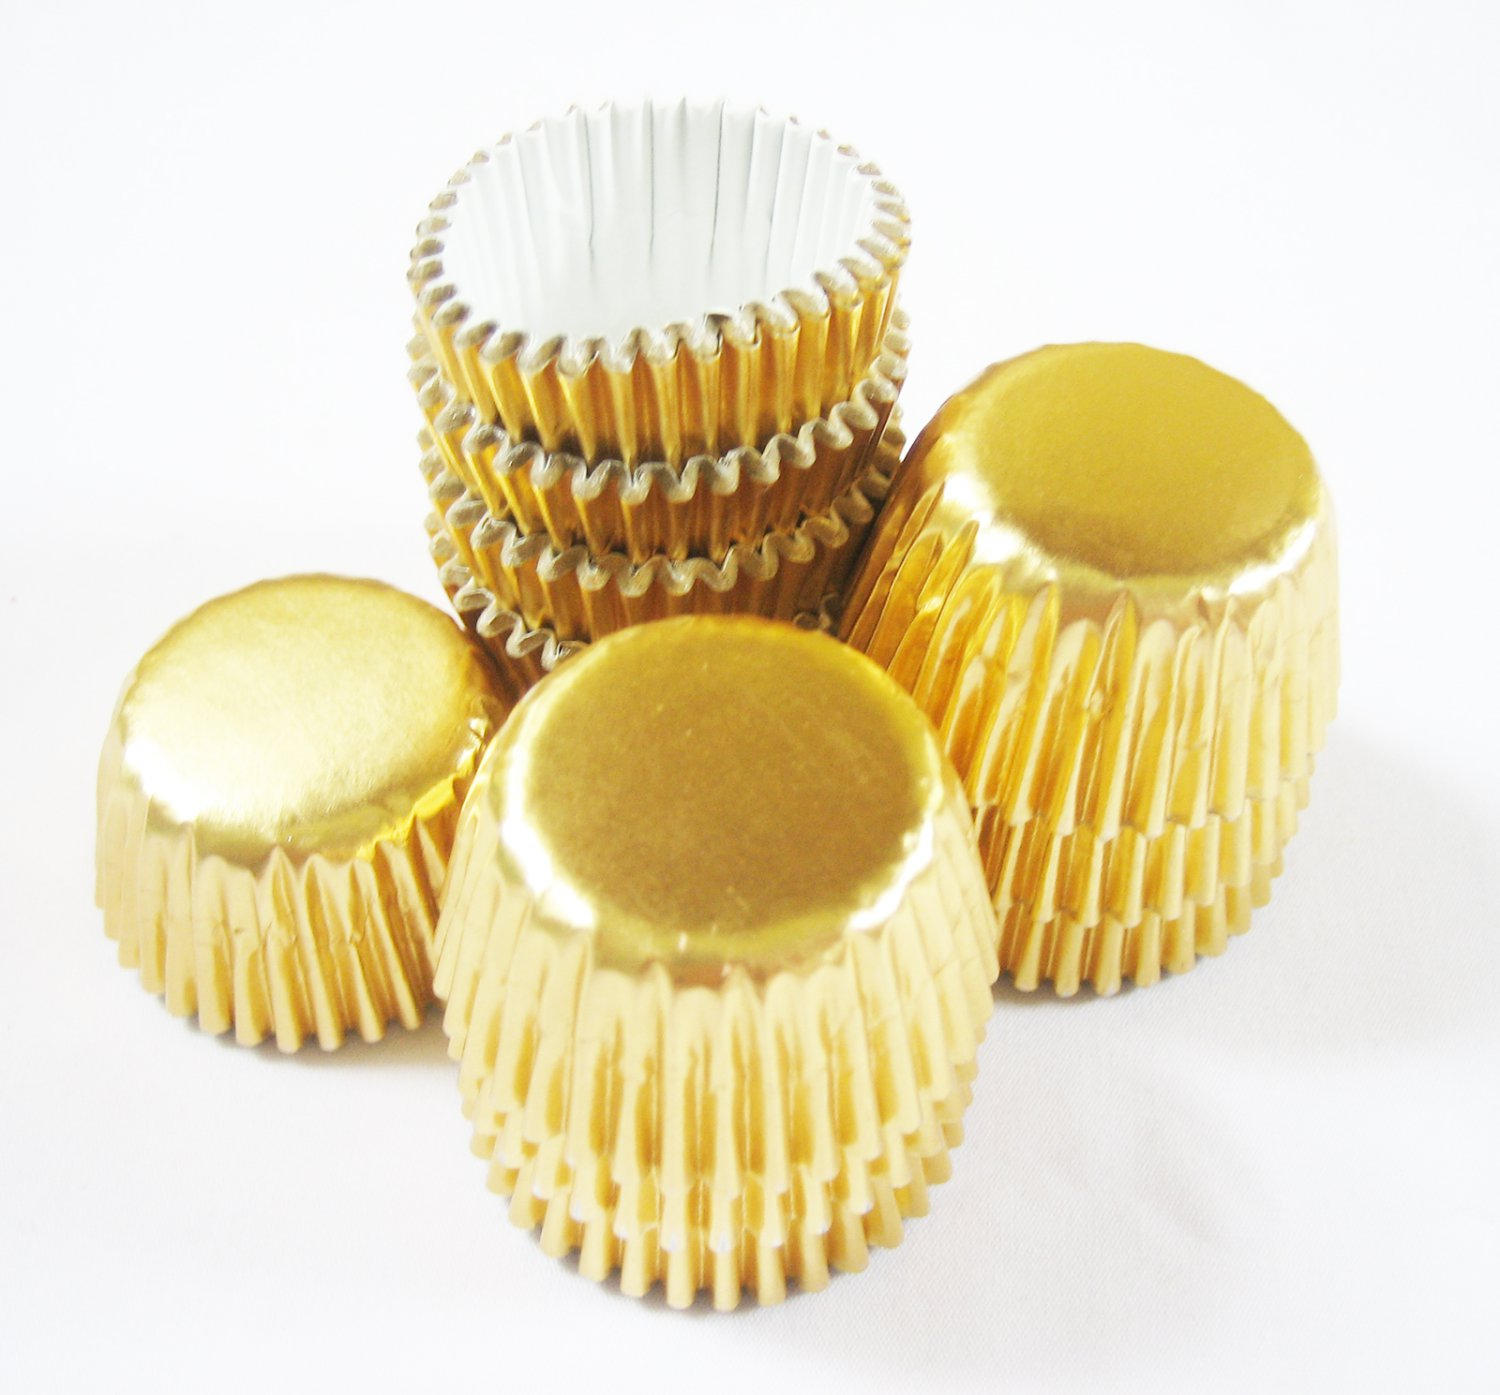 480pcs Gold Mini Paper Cake Cup for Candy/Cookies/Petite/Cake Wedding Party Favor6cm